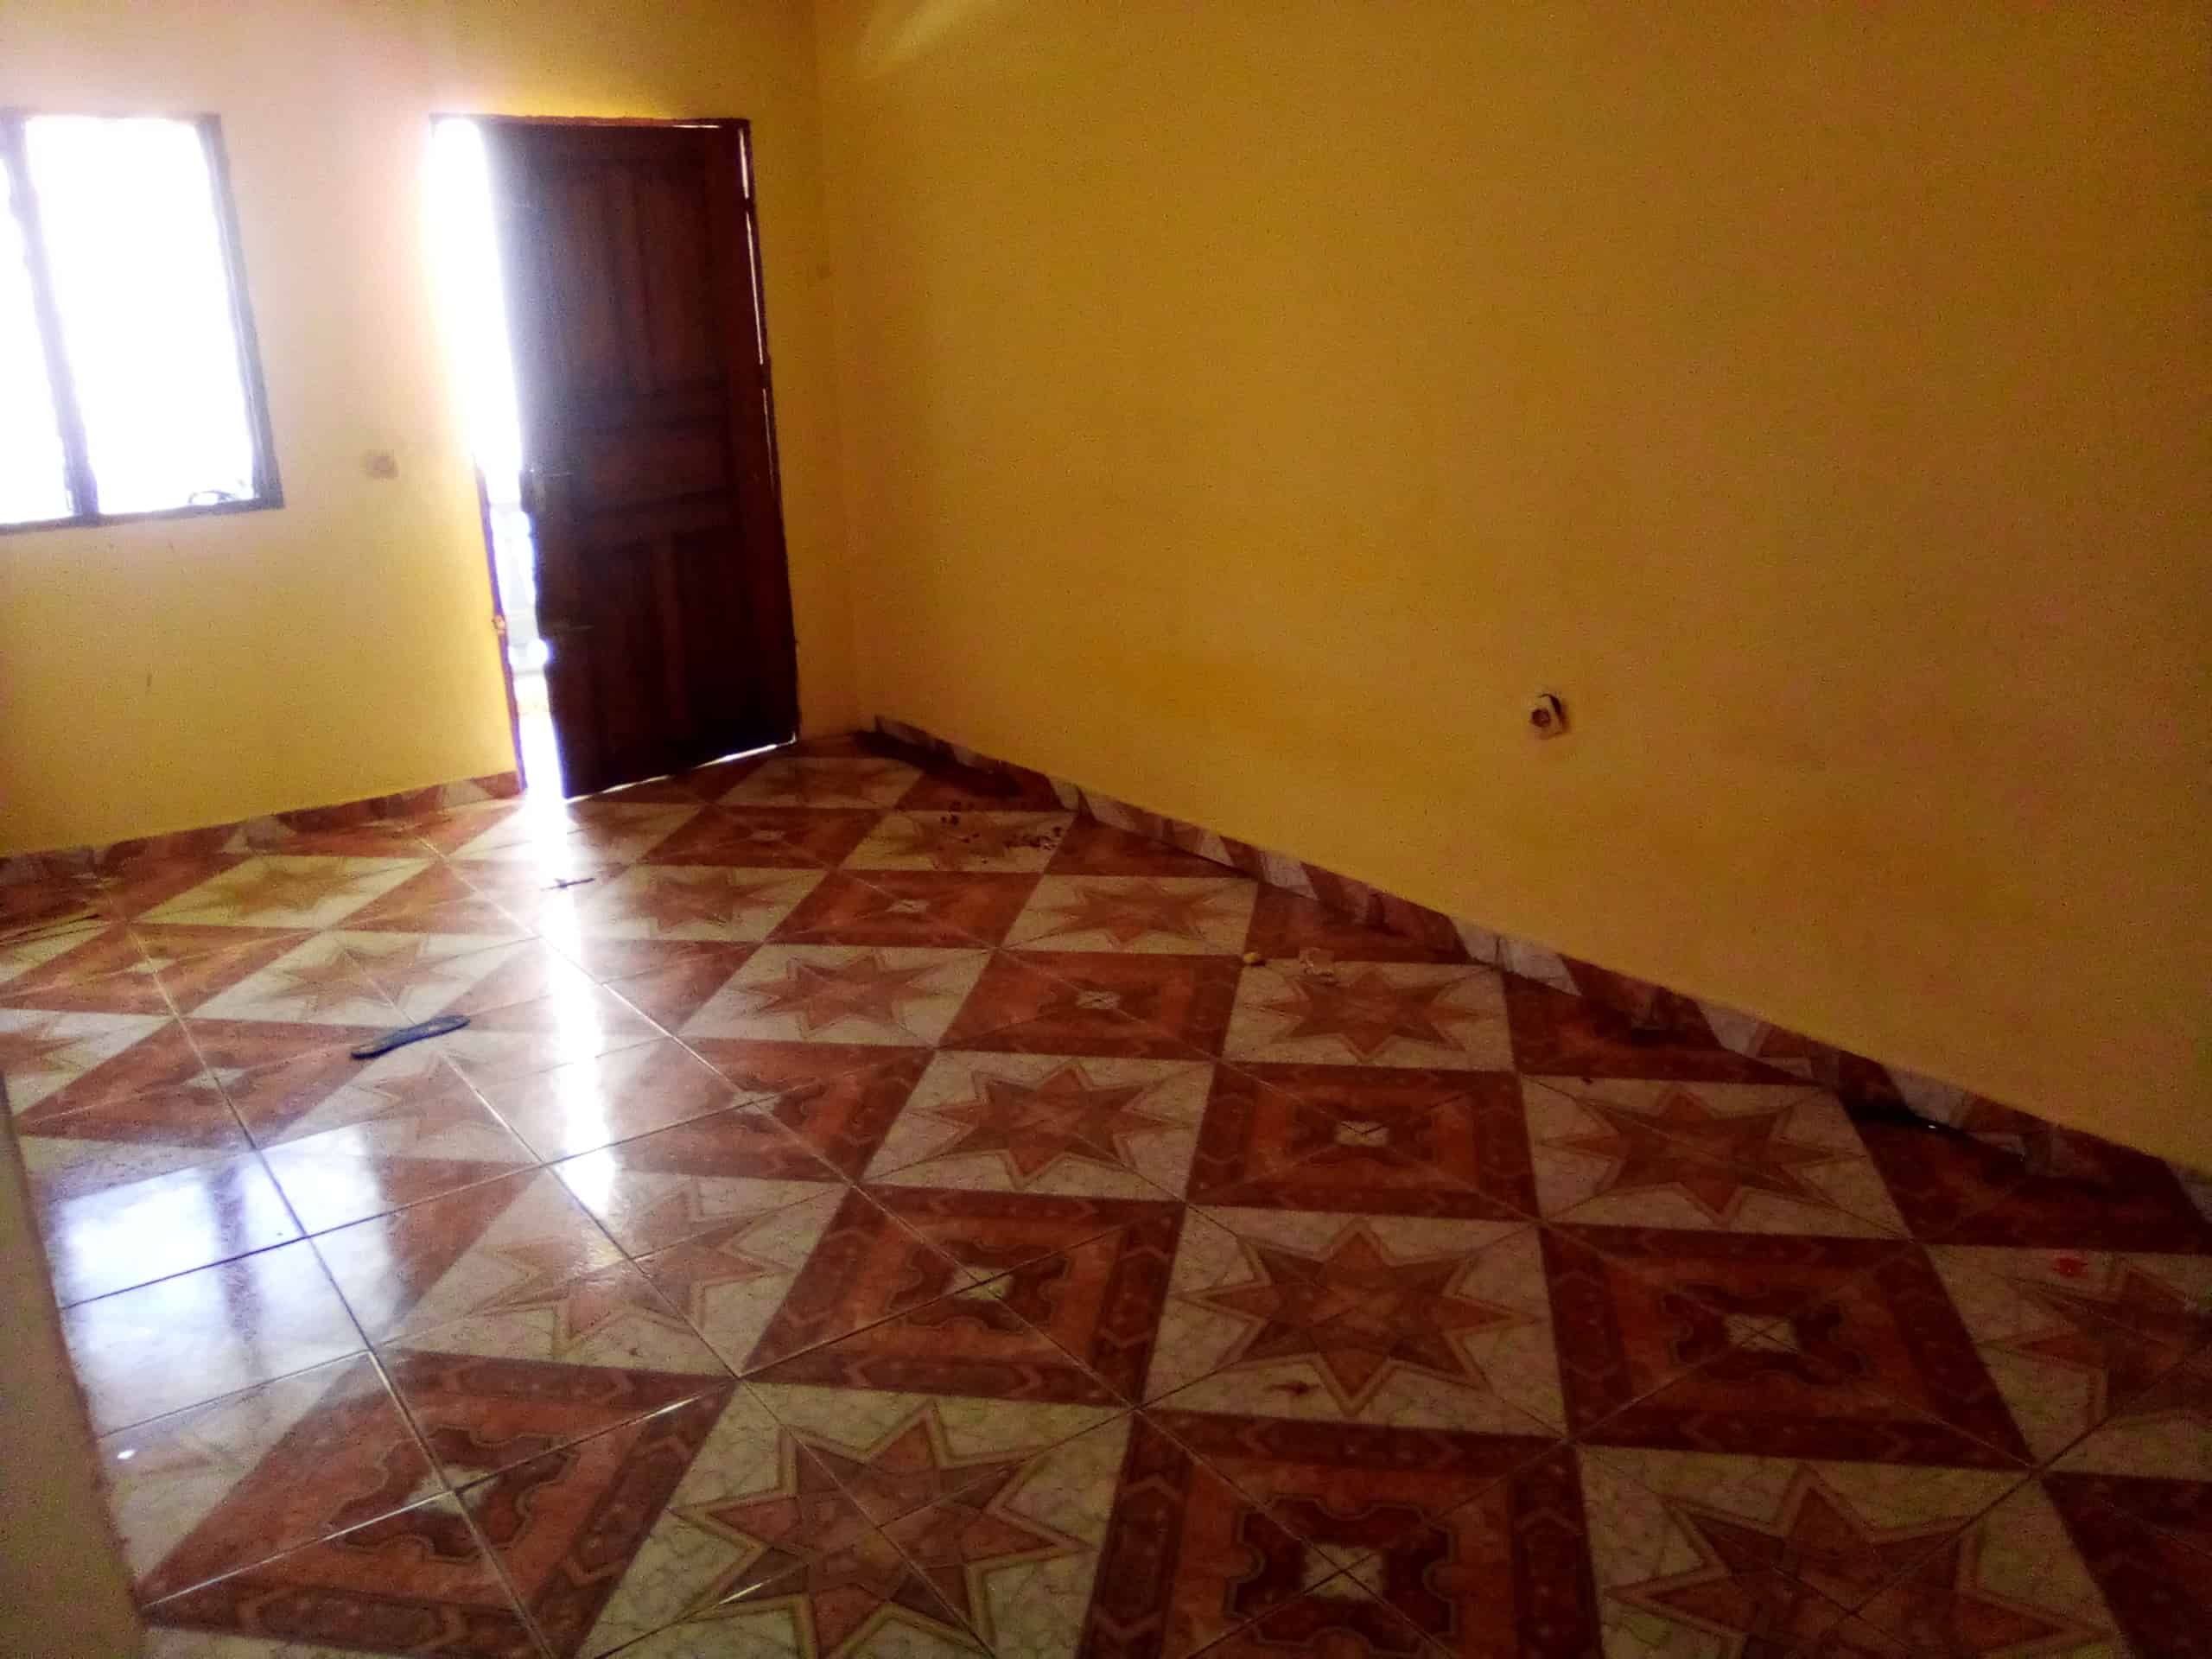 Apartment to rent - Douala, Makepe, lycee - 1 living room(s), 2 bedroom(s), 1 bathroom(s) - 80 000 FCFA / month